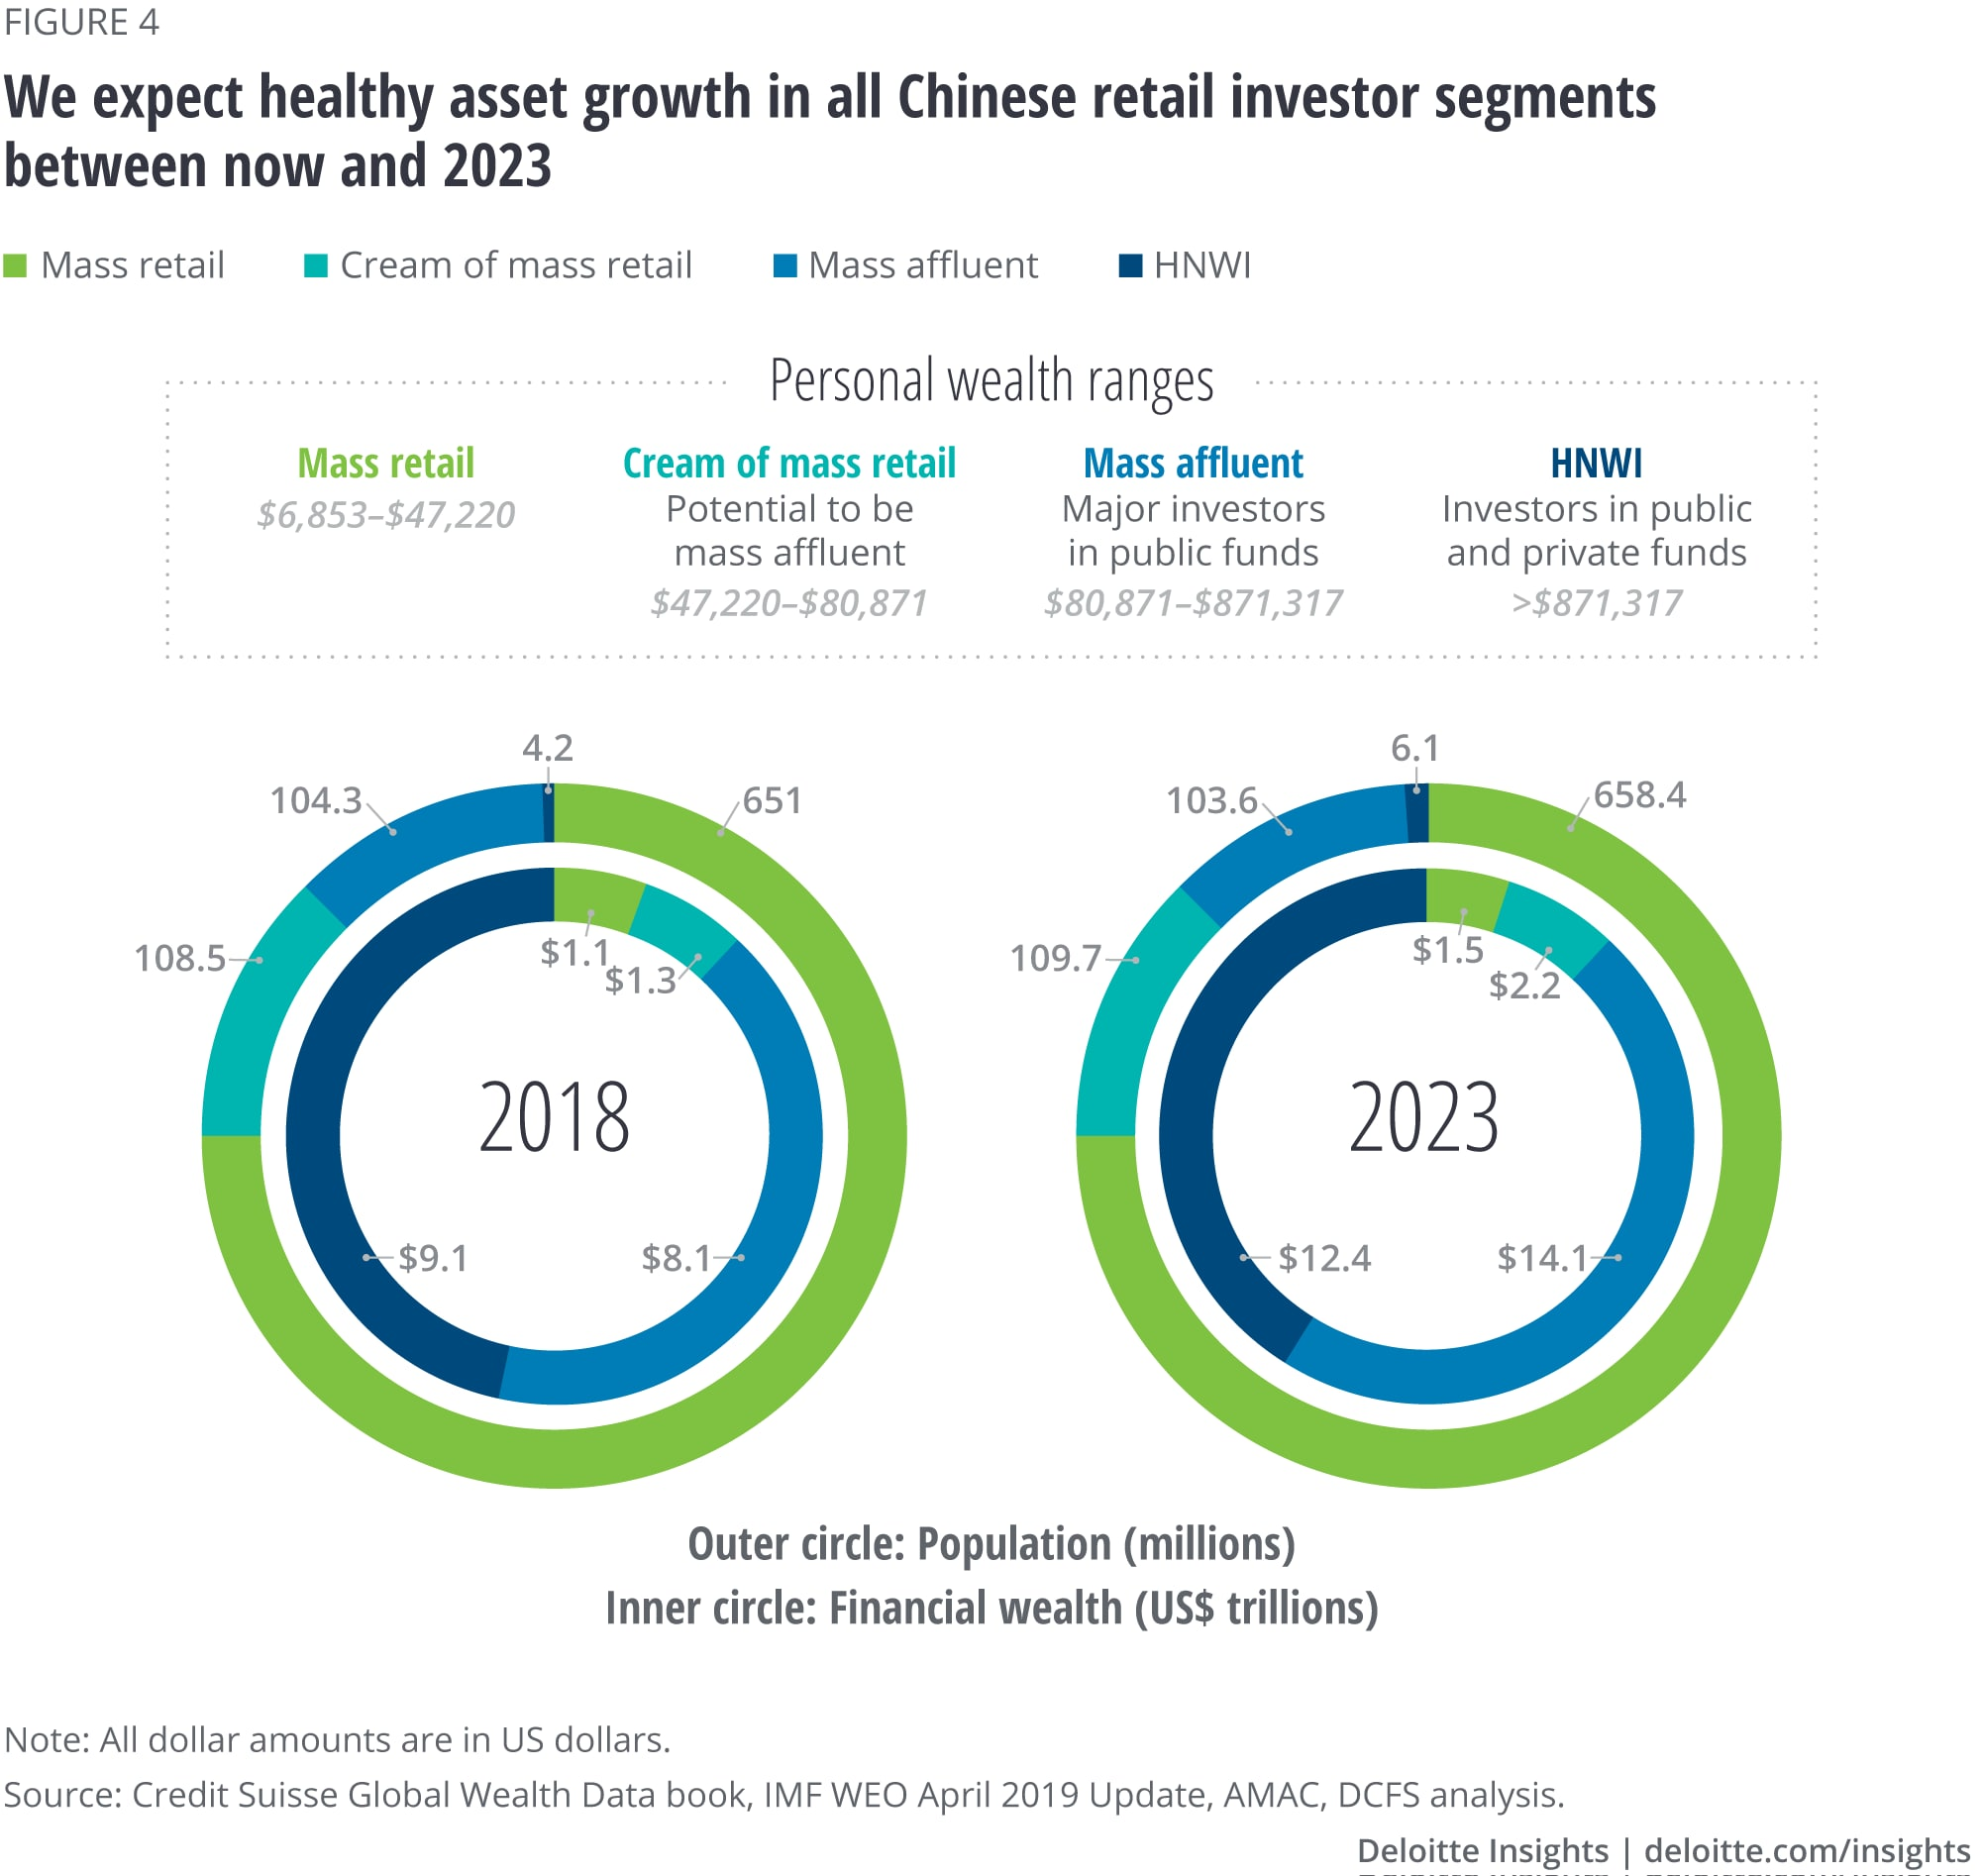 Healthy asset growth is expected in all Chinese retail investor segments between now and 2023